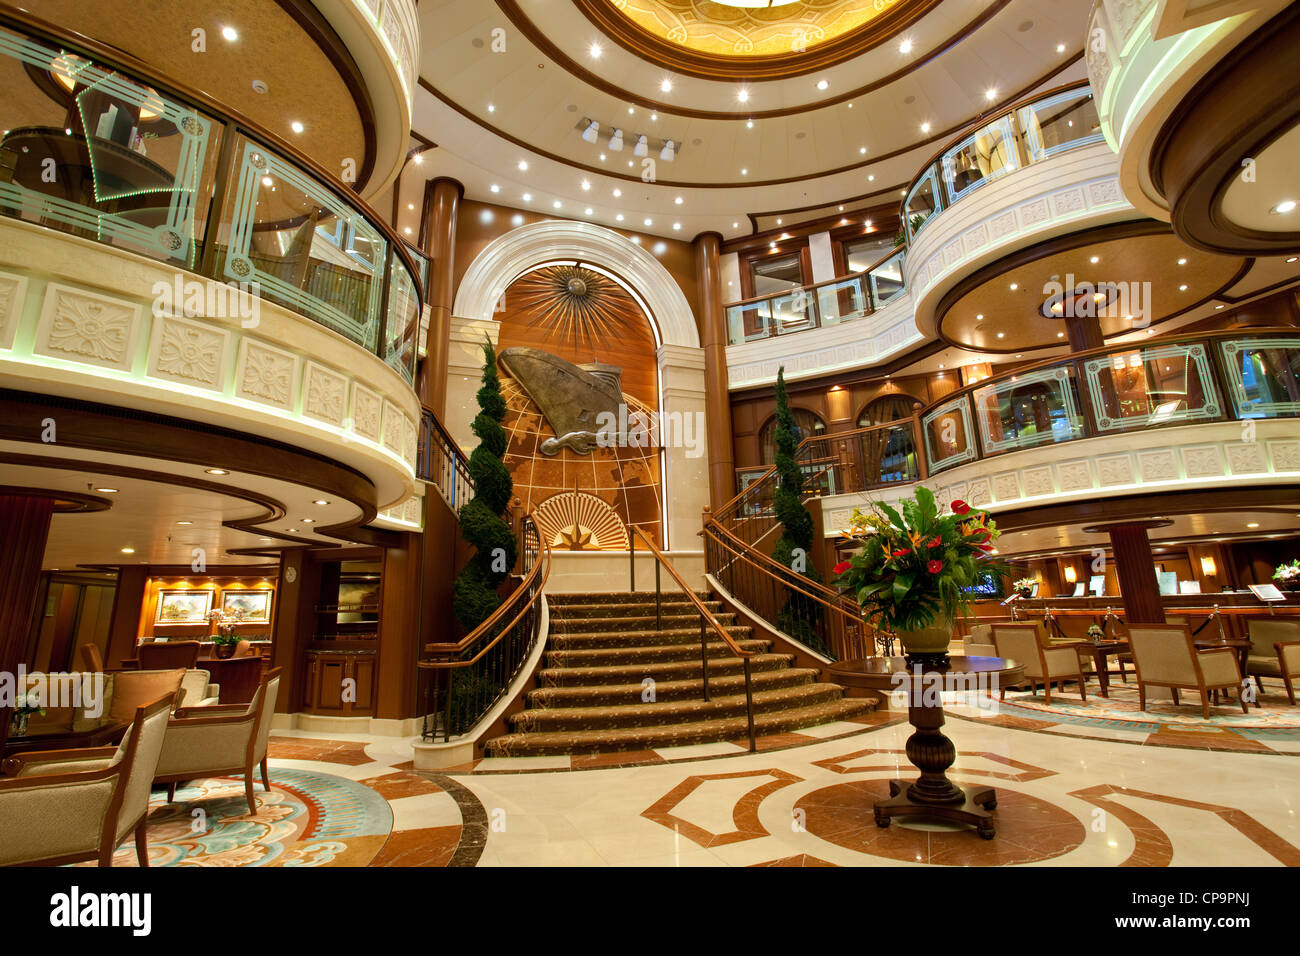 Luxury Cruise Ships Have Richly Decorated Interiors And